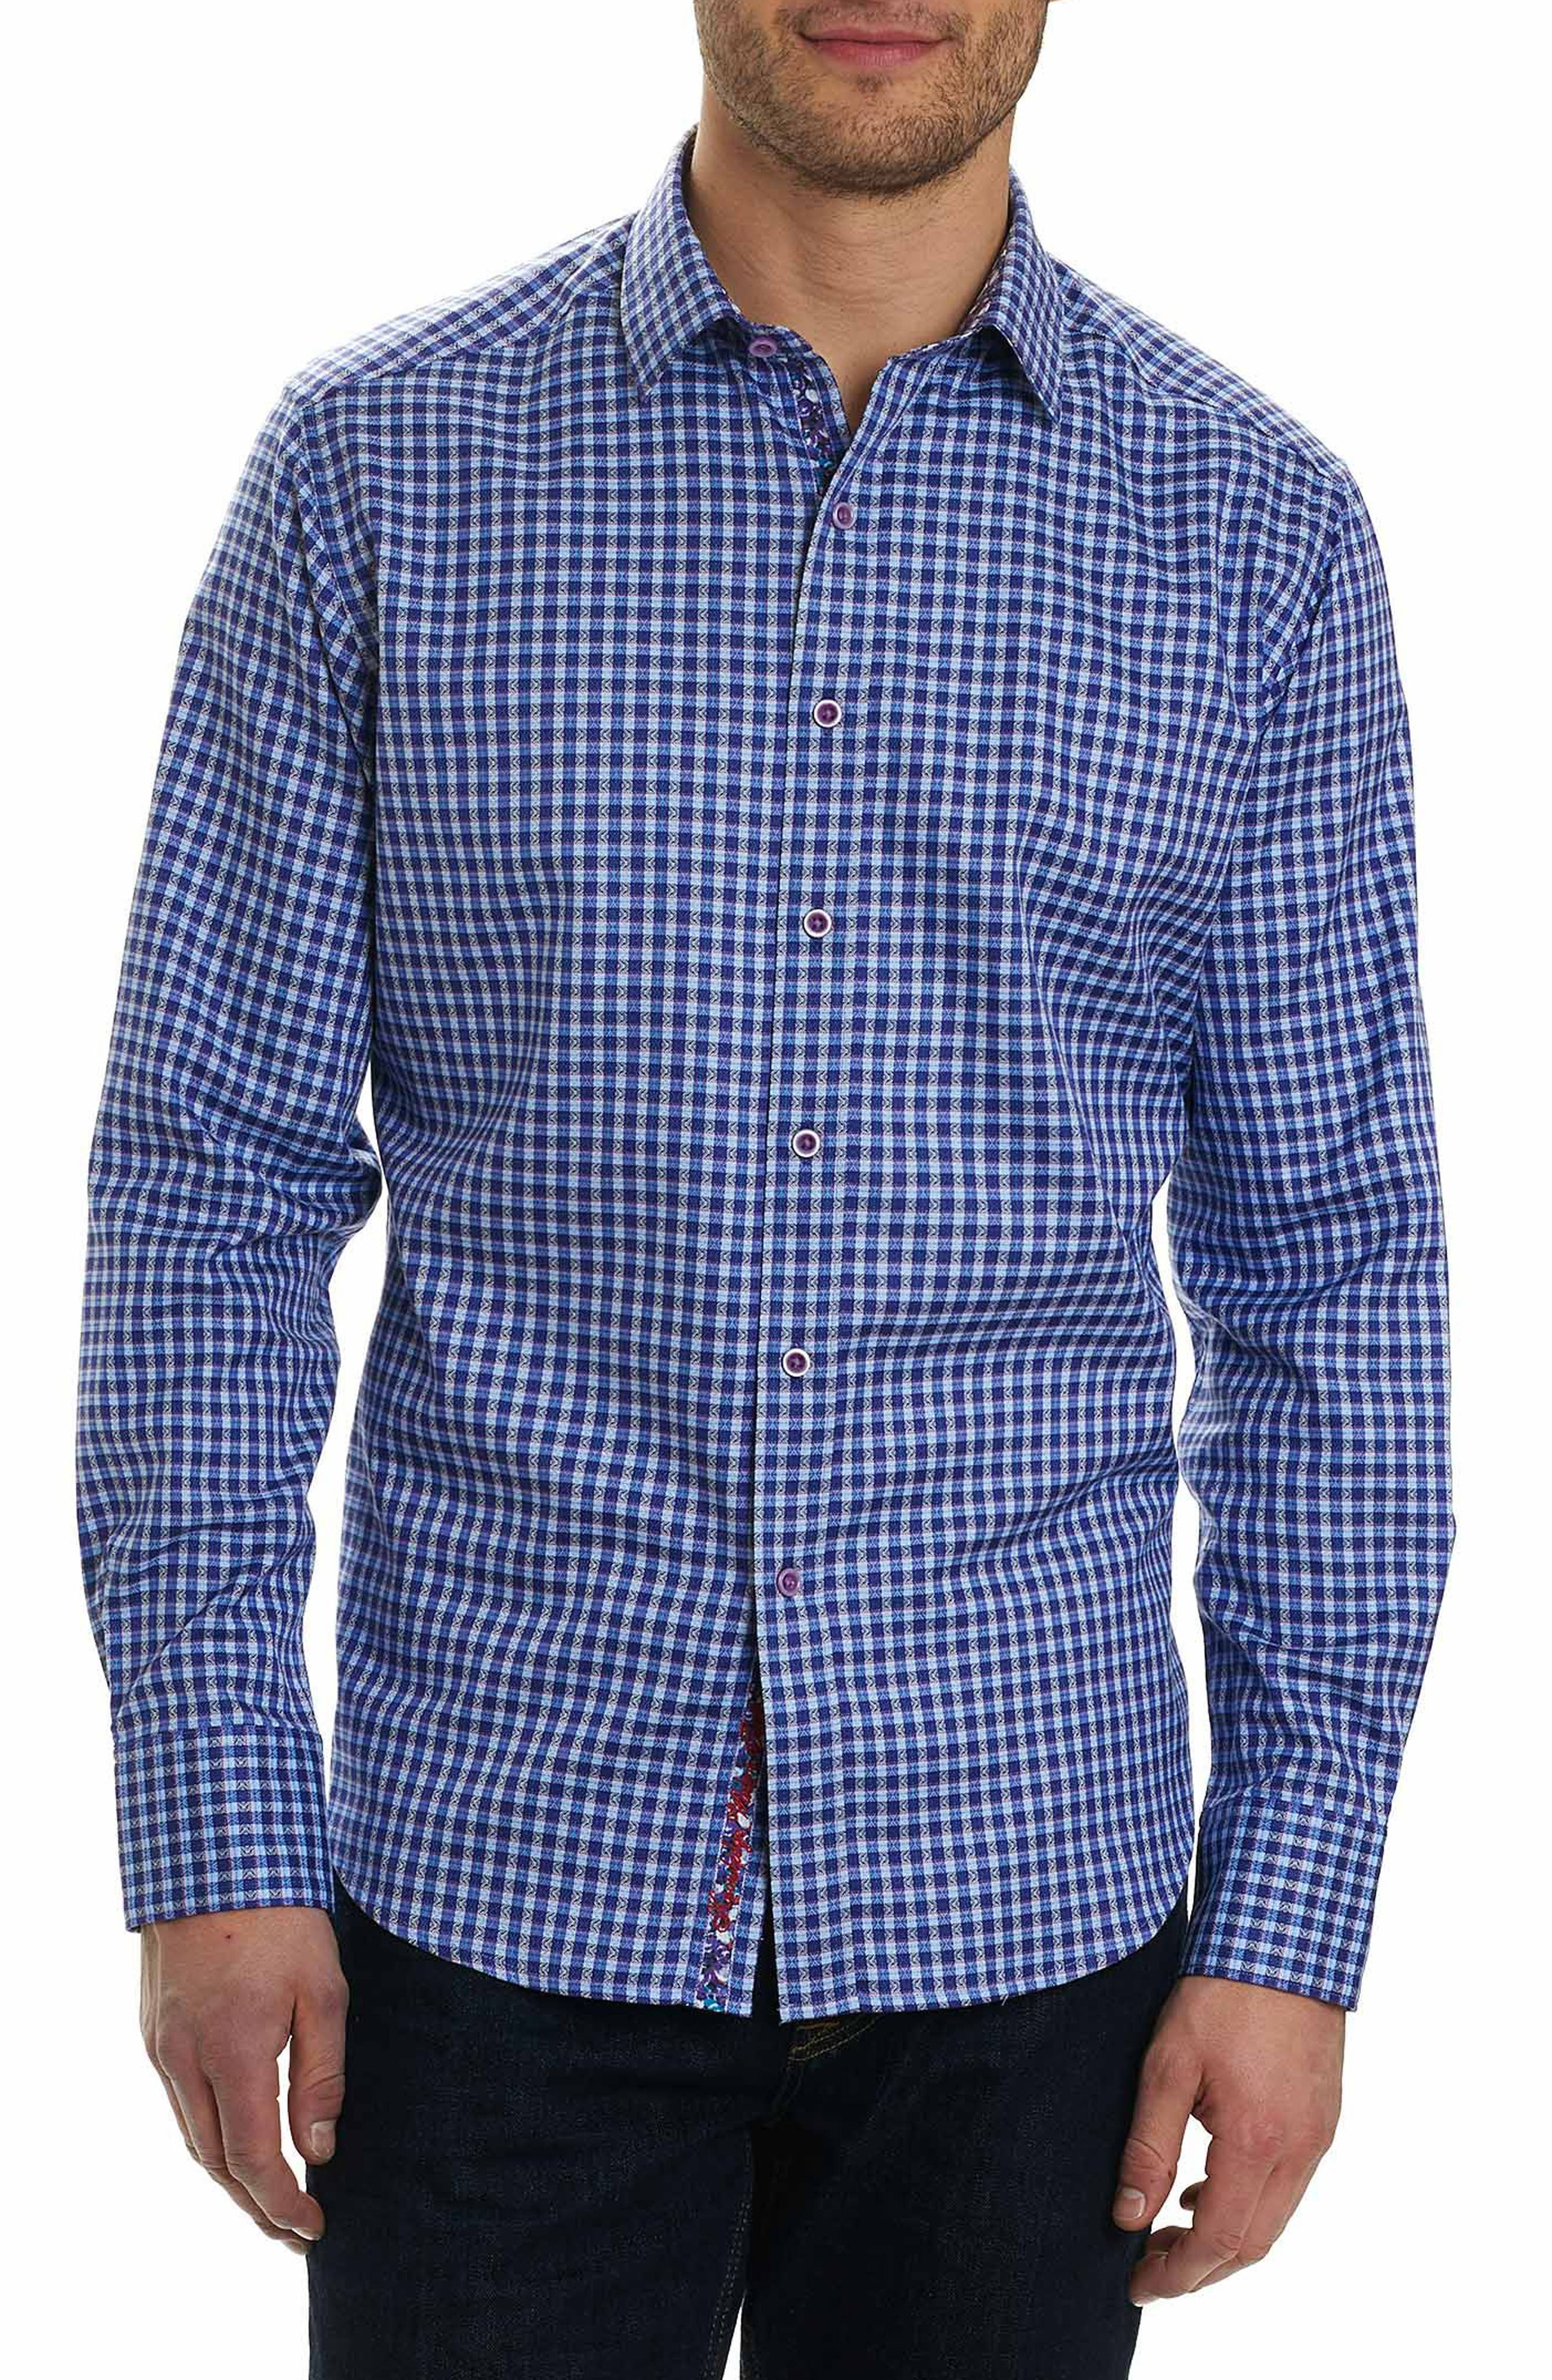 Matira Classic Fit Patterned Gingham Sport Shirt,                             Main thumbnail 1, color,                             510